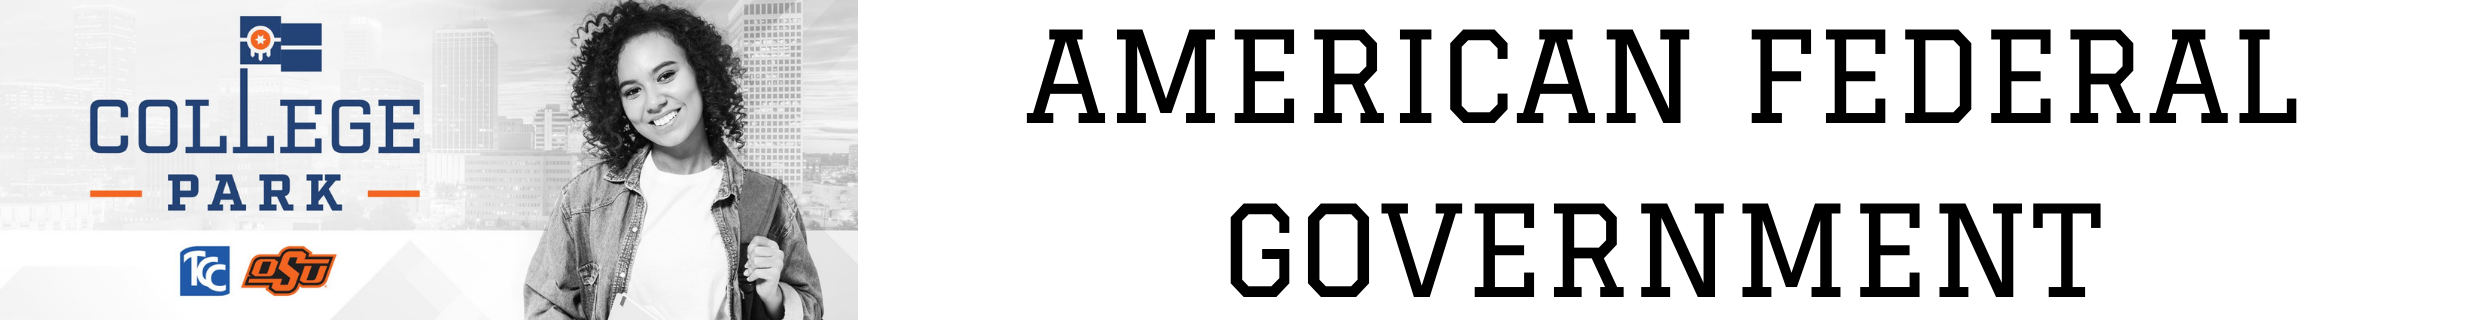 College Park American Federal Government